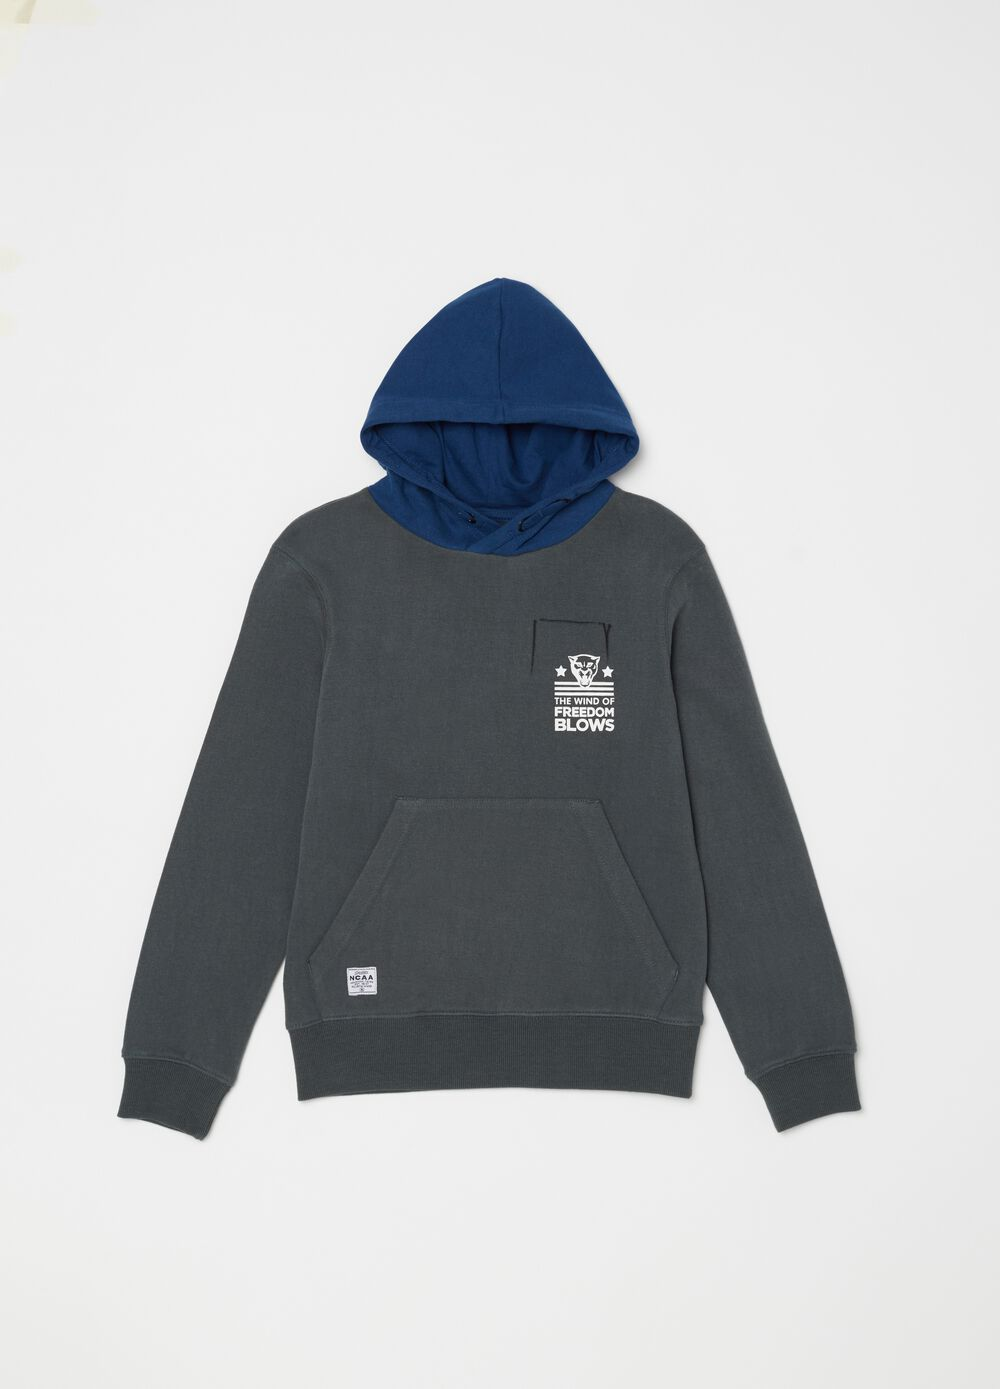 Crew neck sweatshirt with hood and print